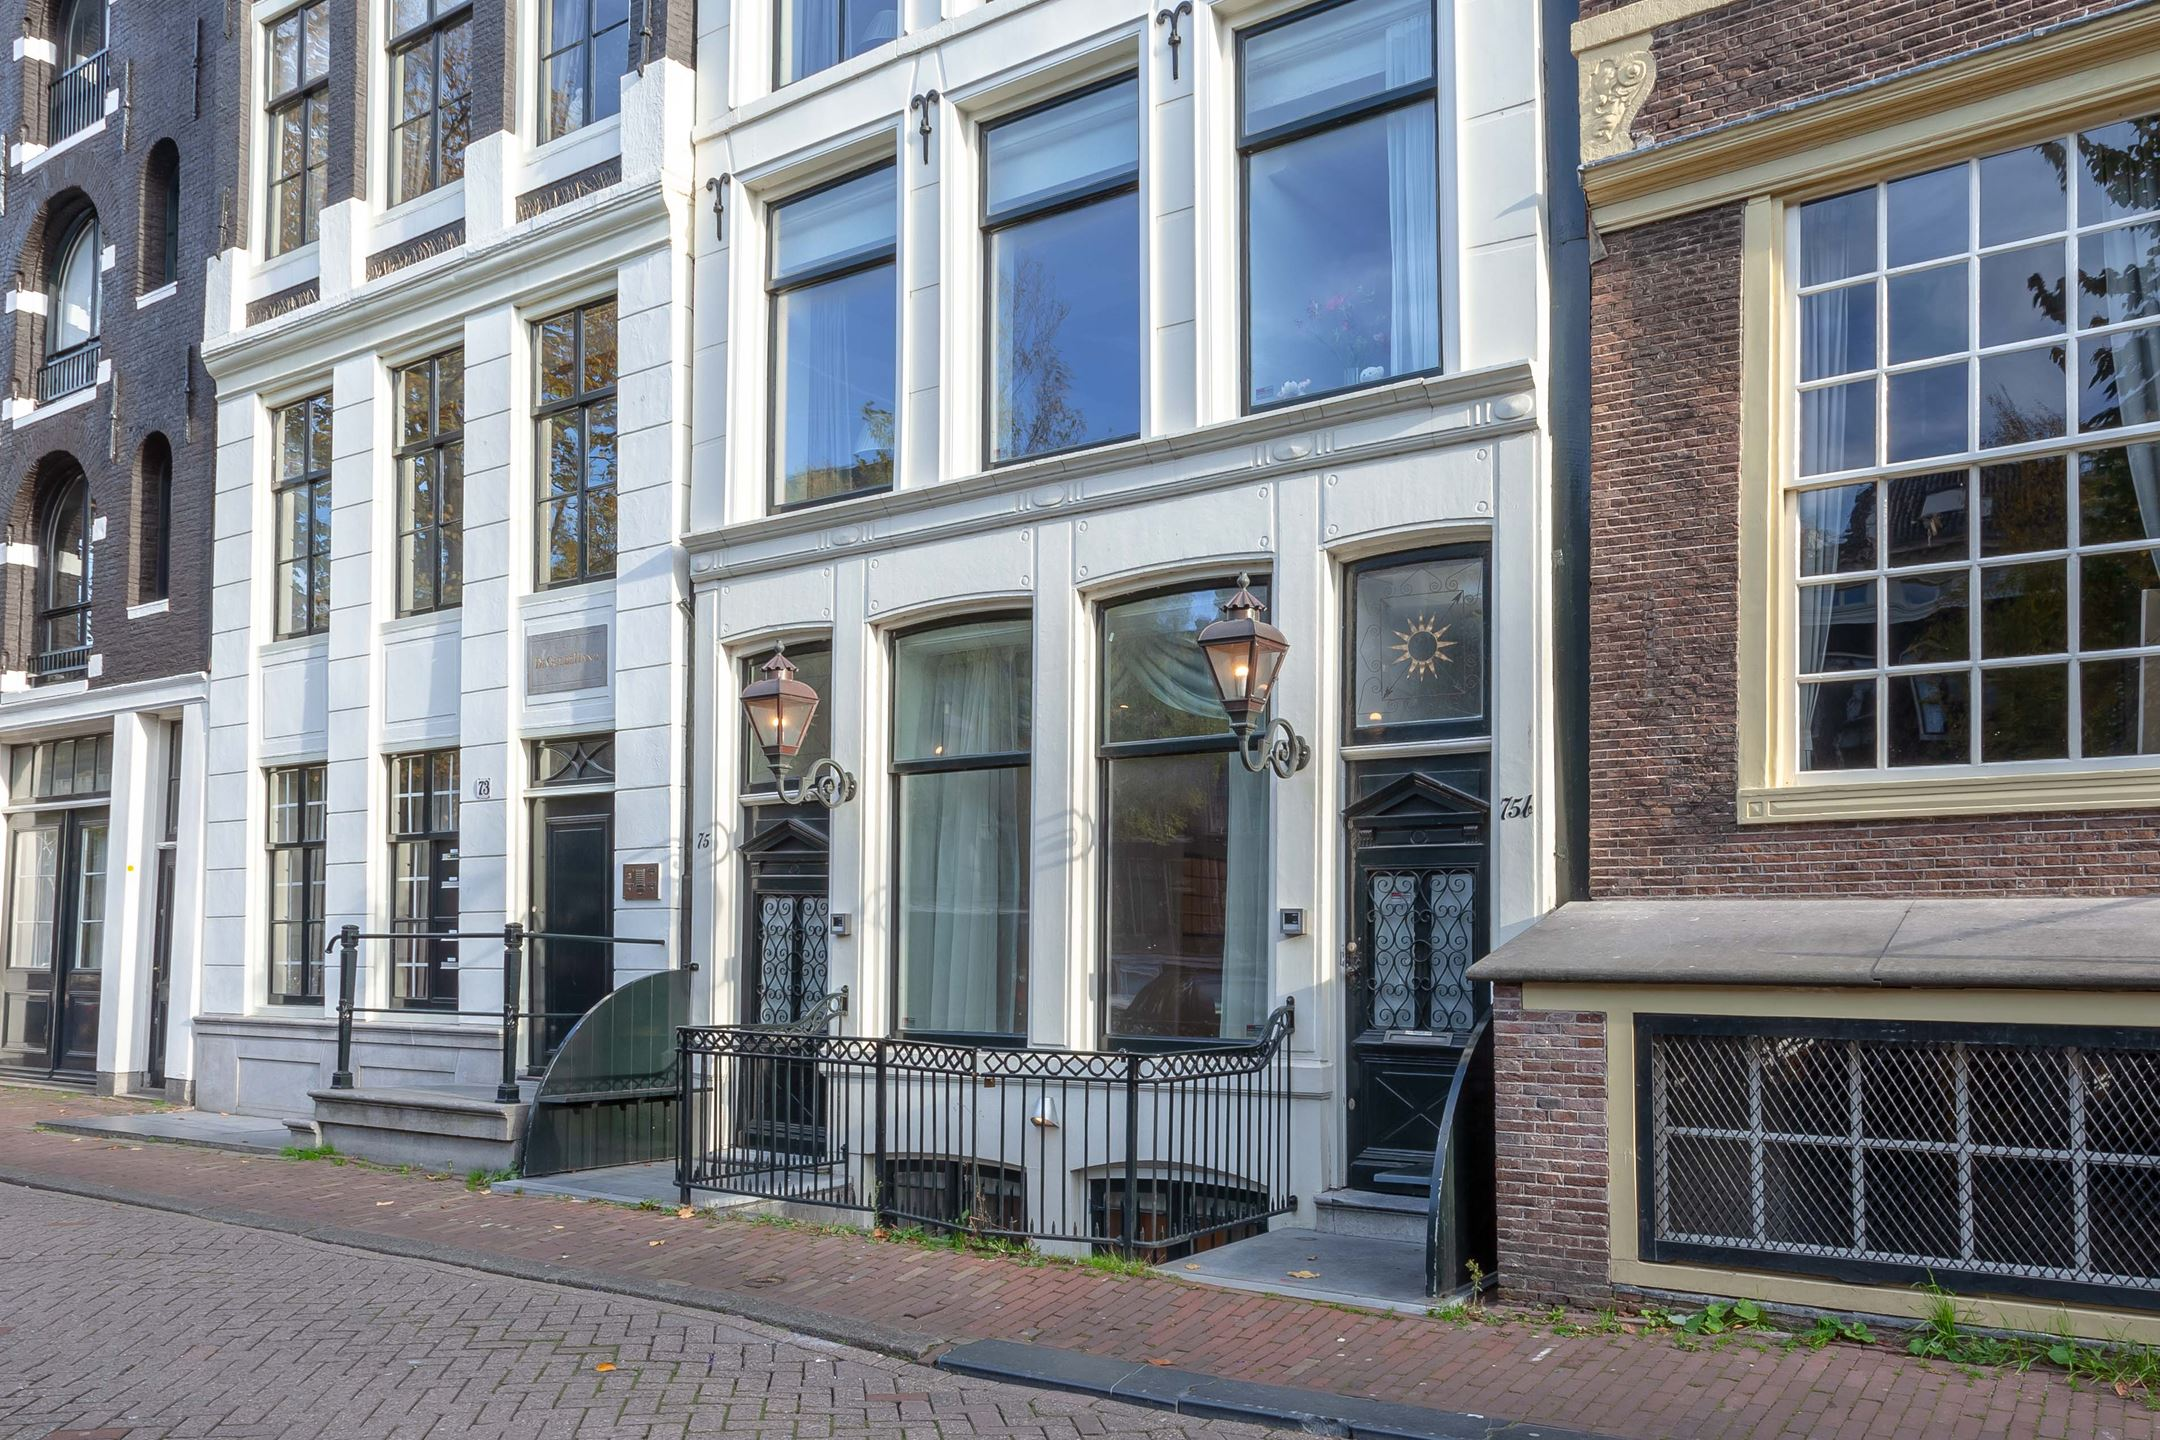 Herengracht 75hs. Our front door (under the lantern on the left) was over a hundred years old. Much of our apartment reflected a remodel made only as recently as the 1920s. During the War, the brown brick building to the right was the home of a ranking Dutch Nazi sympathizer.